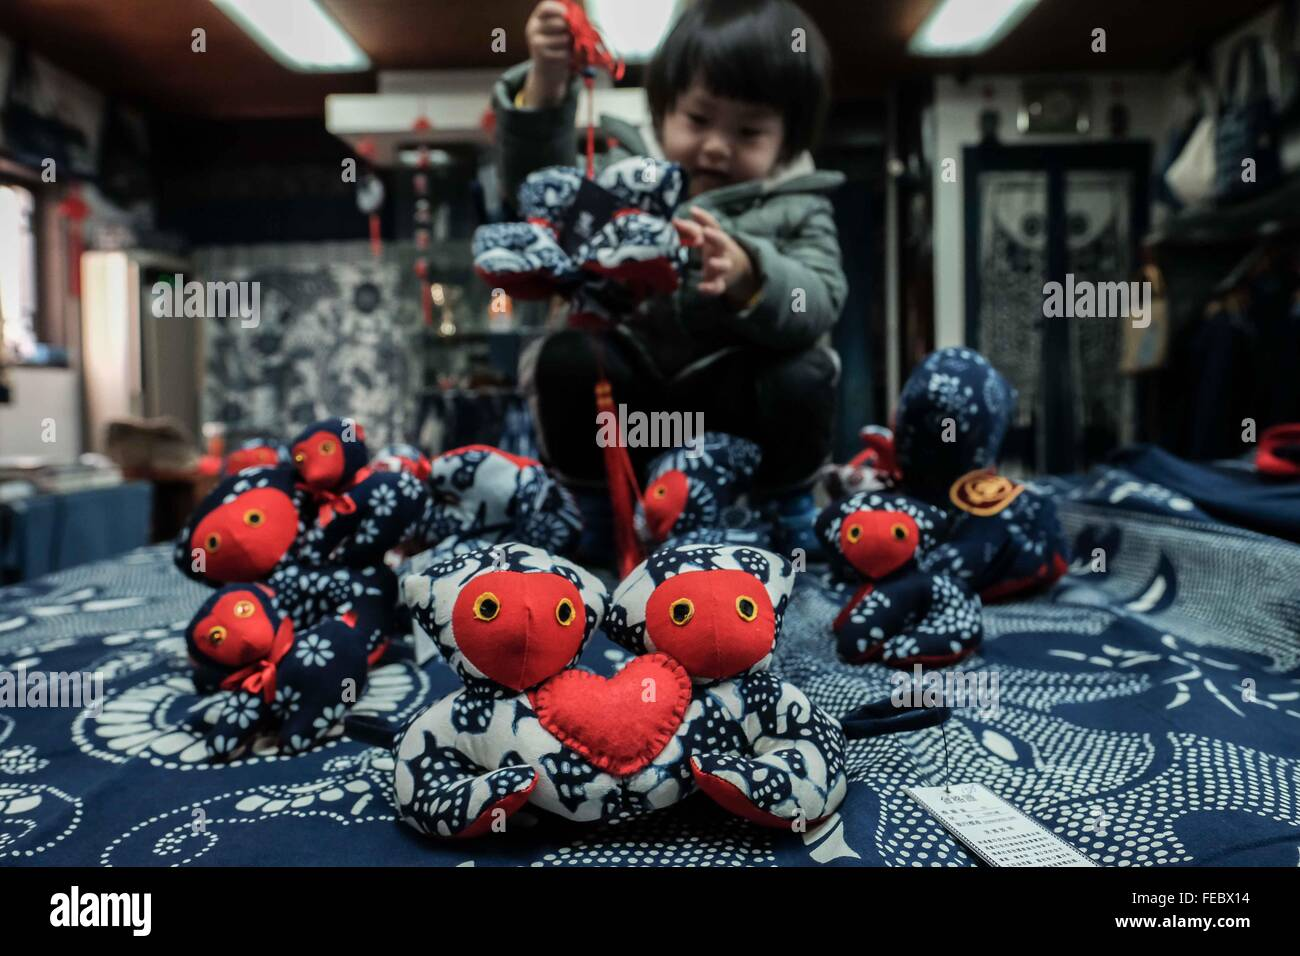 (160205) -- NANTONG, Feb. 5, 2016 (Xinhua) -- A kid picks blueprint cloth in the shape of monkey in Nantong, east - Stock Image